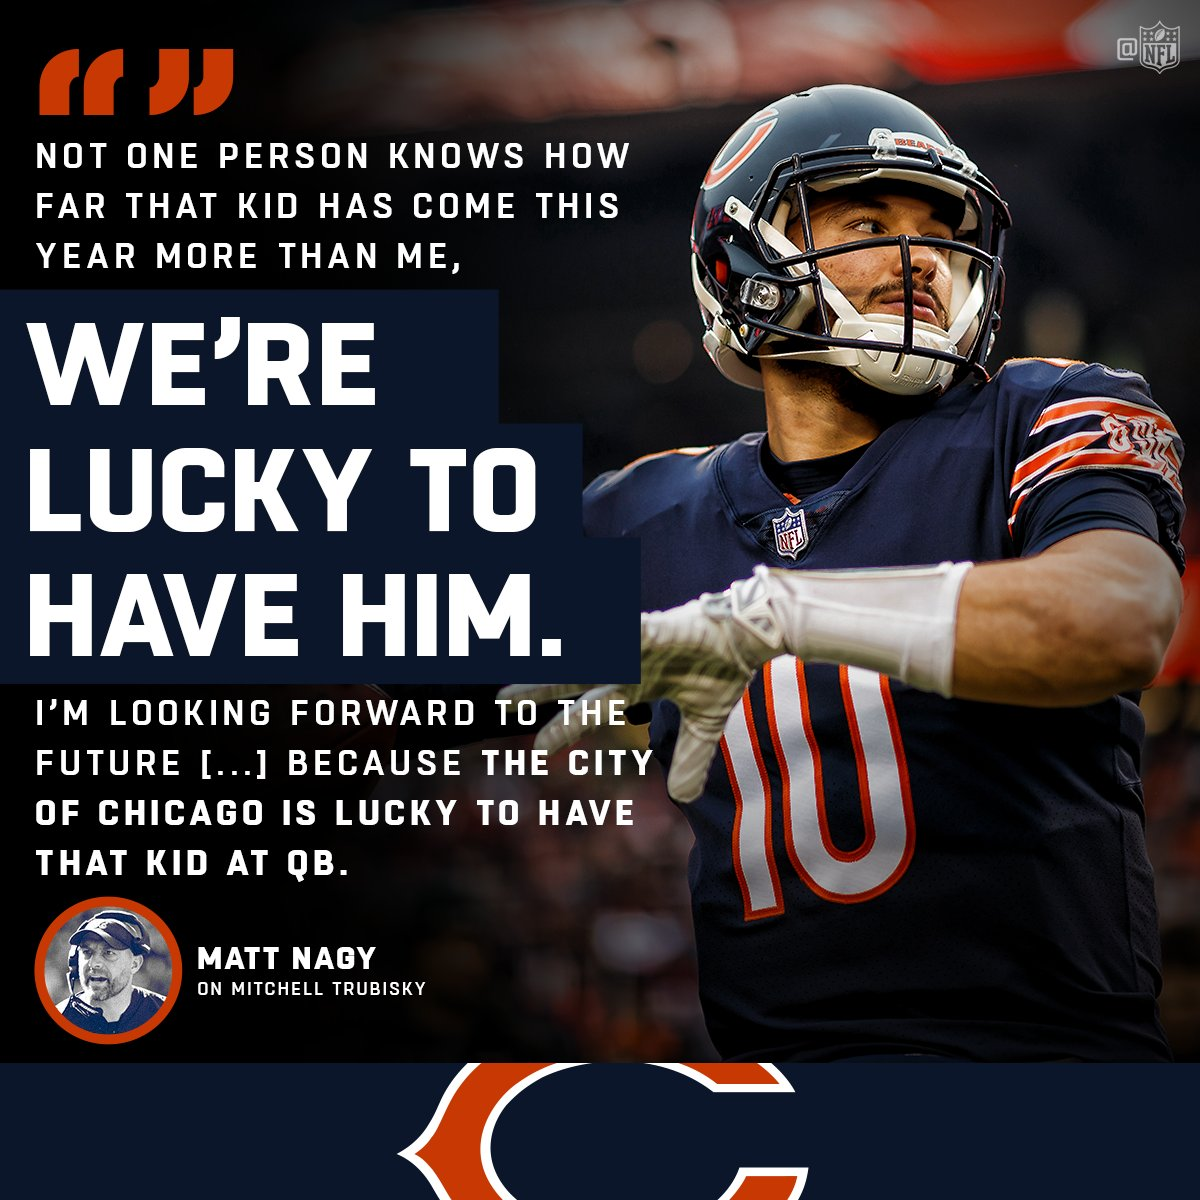 Wait until you see what @Mtrubisky10 does next. ��⬇️ https://t.co/Yp72qszTWW